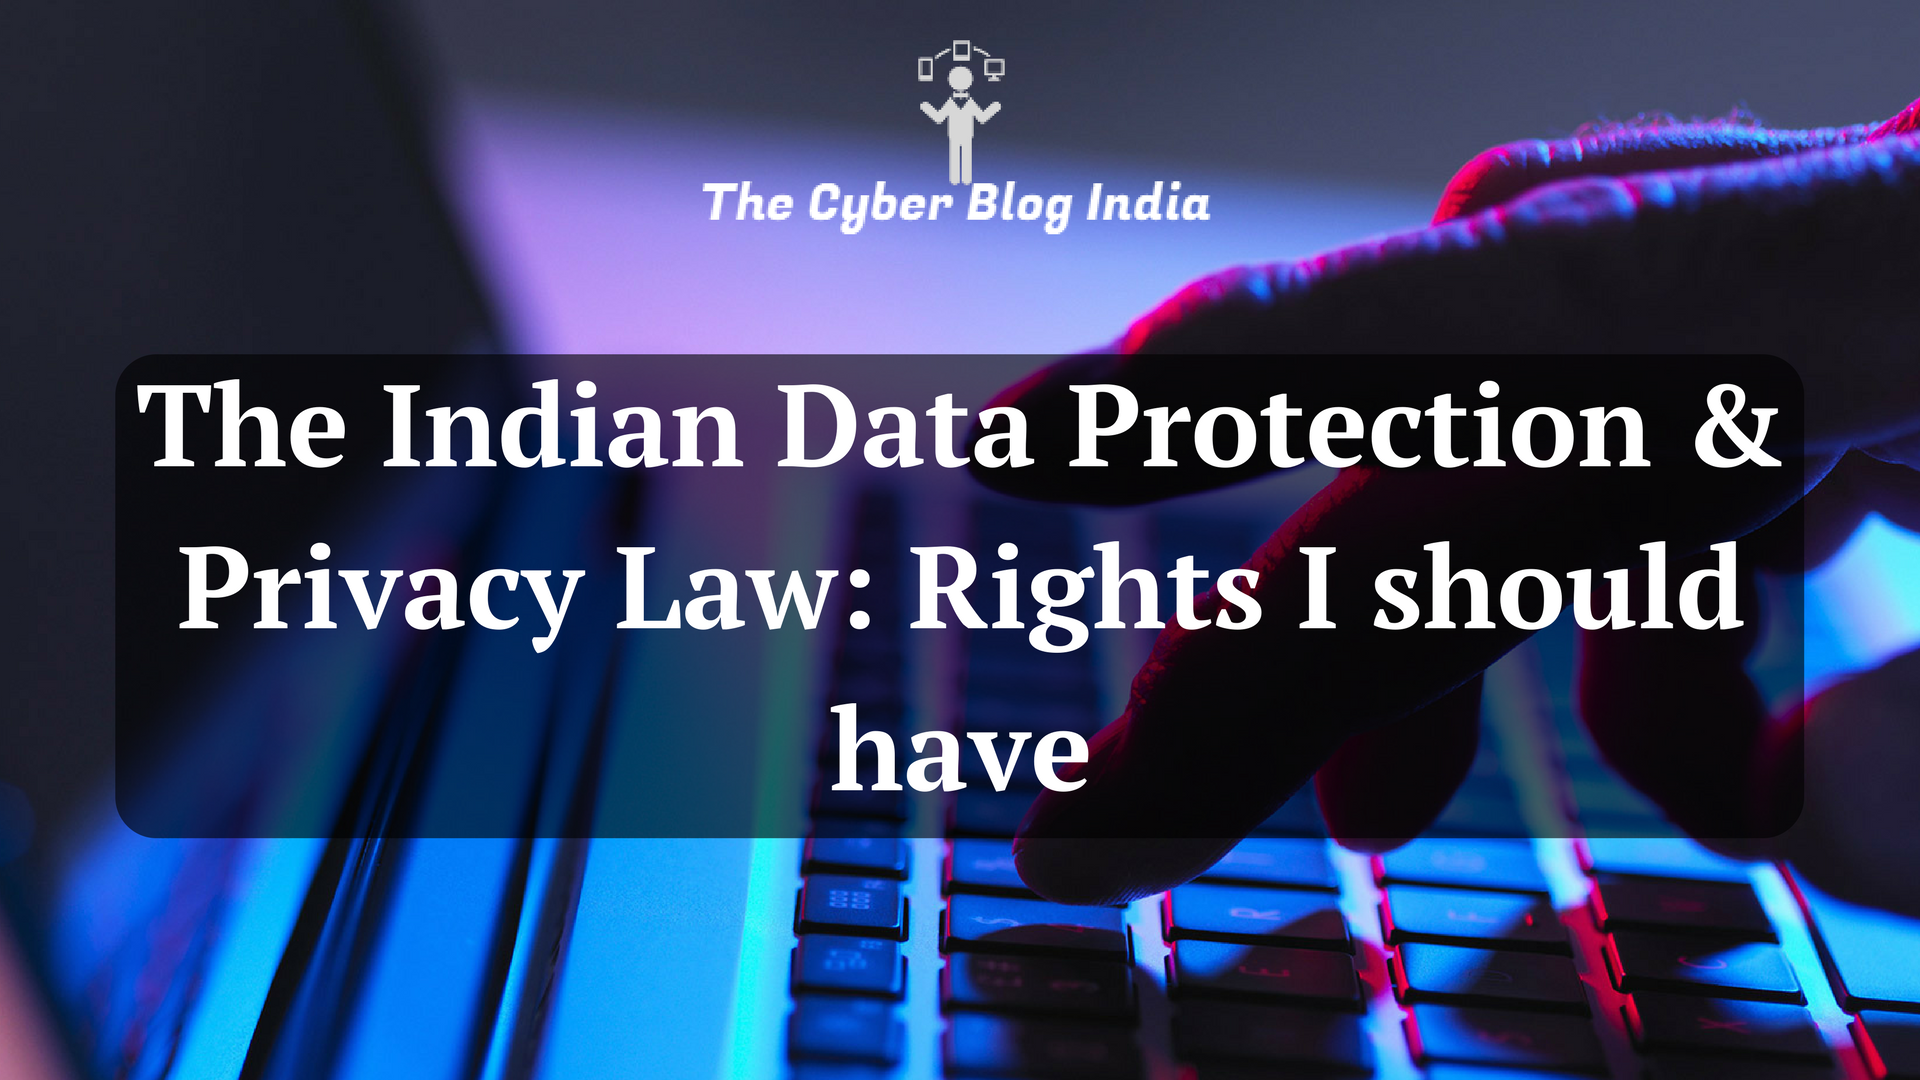 The Indian Data Protection & Privacy law- Rights I should have